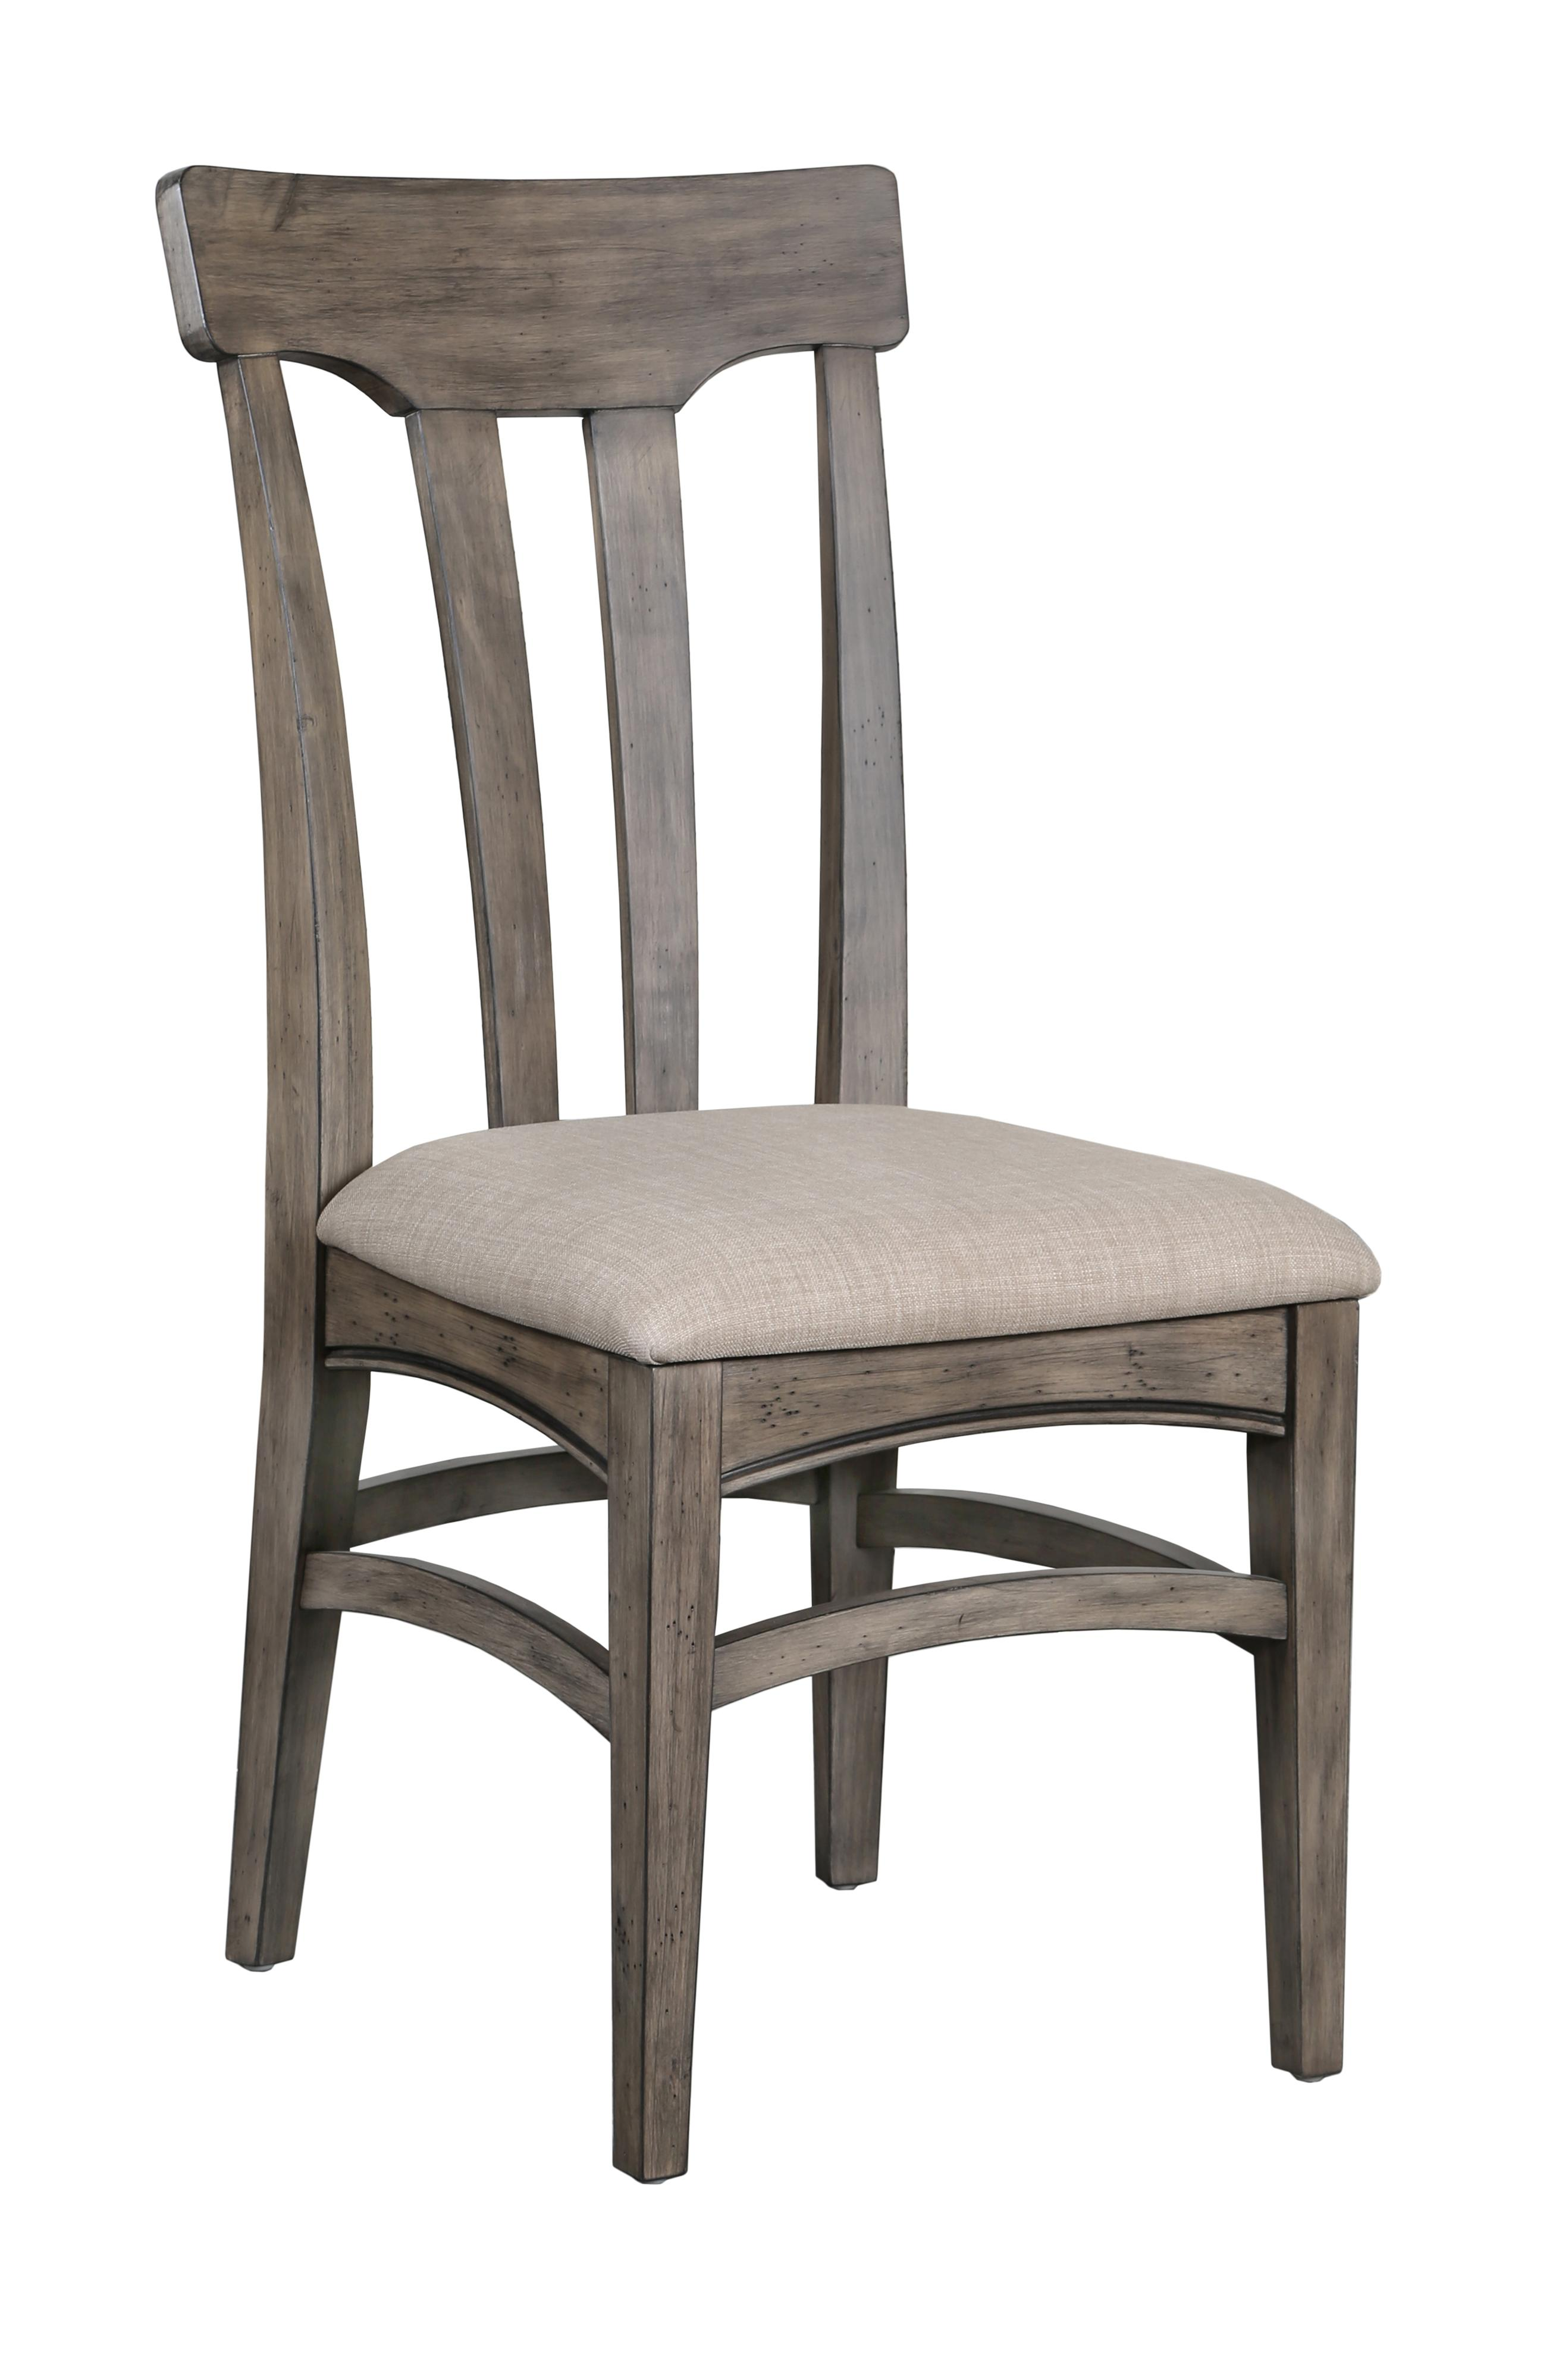 Magnussen Home  Walton Dining Chair with Upholstered Seat - Item Number: D2469-62